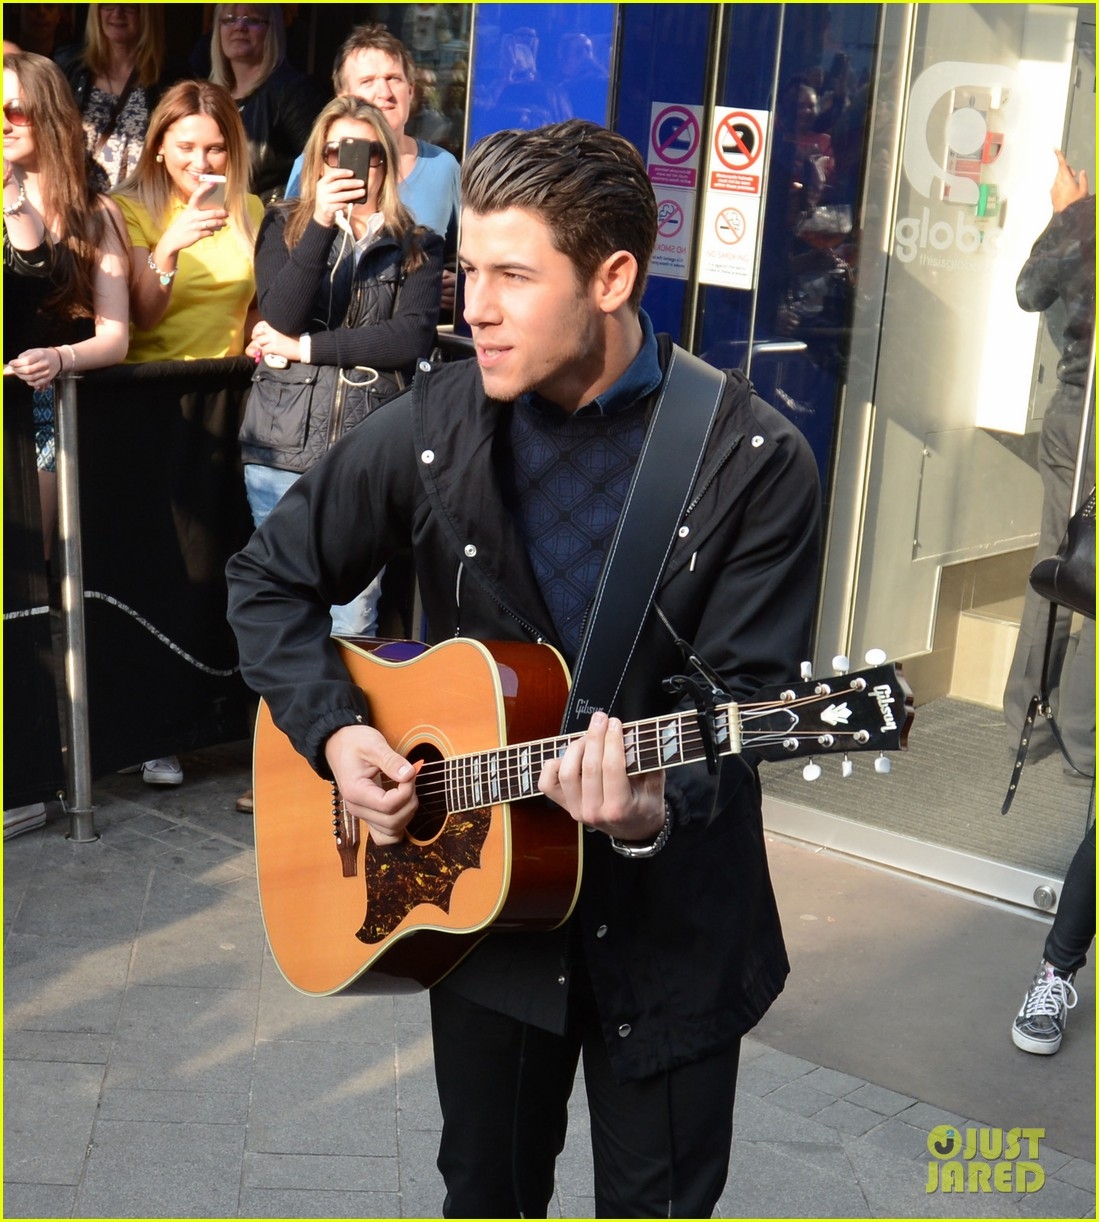 Nick jonas makes surprise appearance at westfield london amp performs